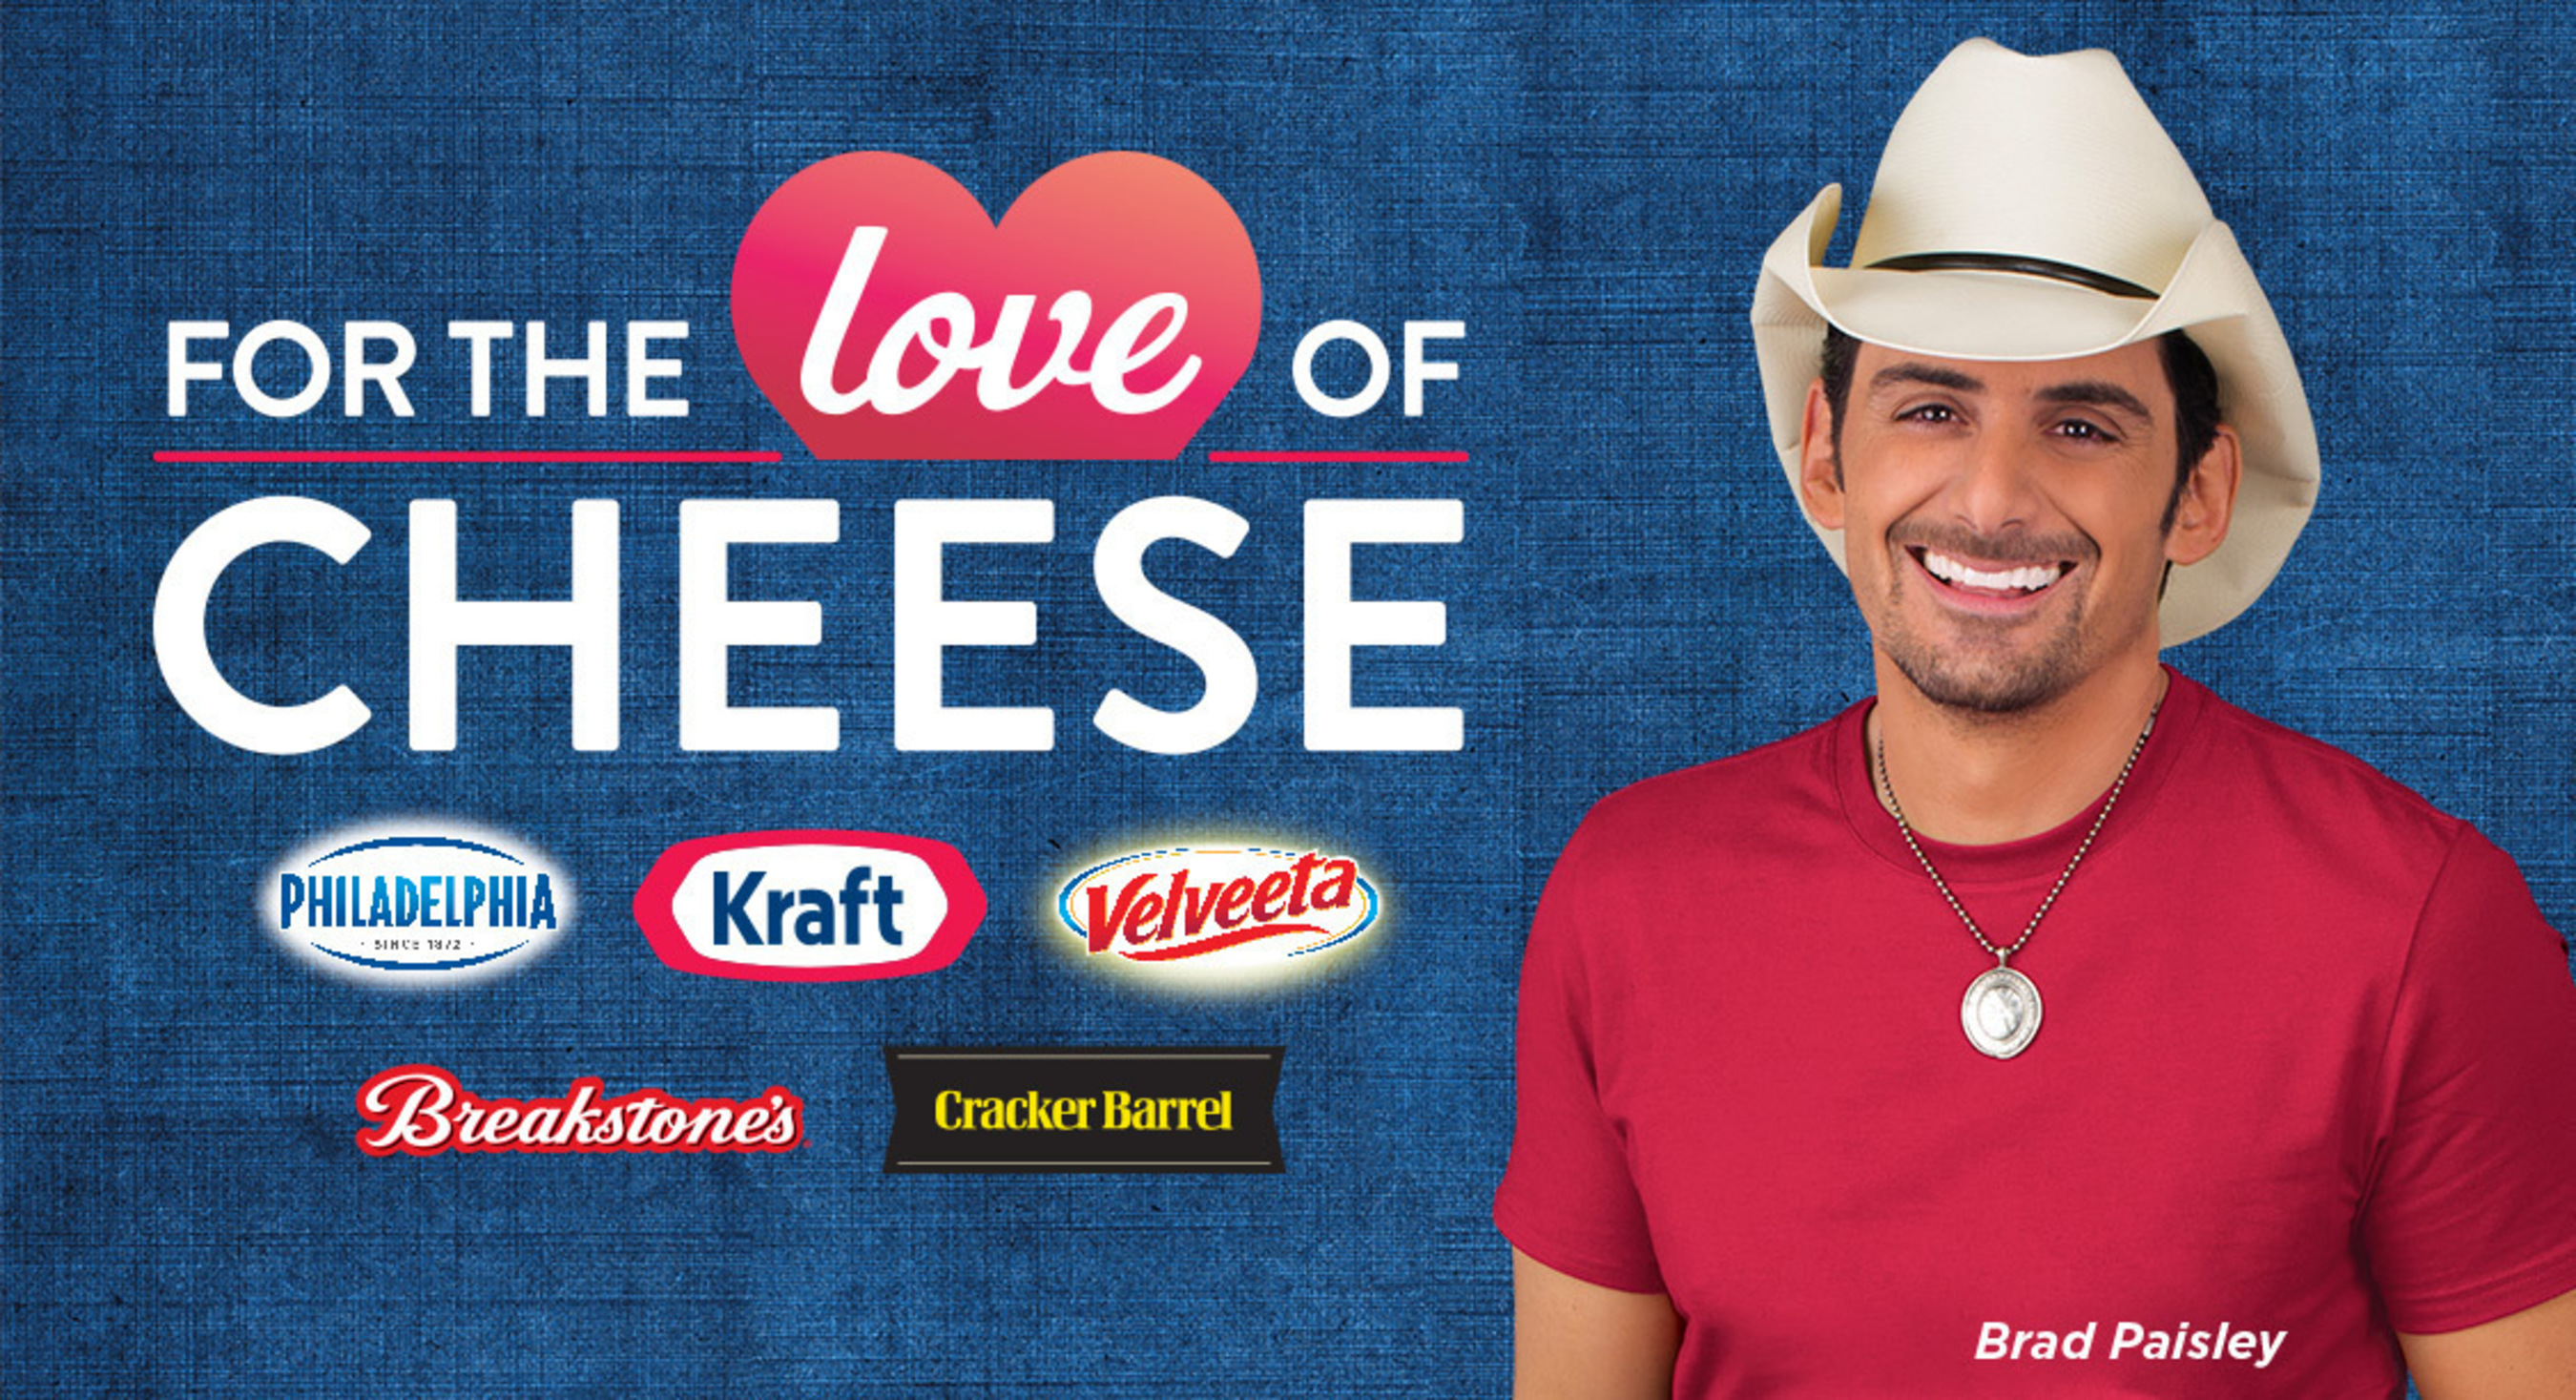 Kraft, America's favorite cheese brand, celebrates 100 years and is joined by country music star Brad Paisley to unleash cheese-lovers' passion for the good stuff. (PRNewsFoto/Kraft Foods)